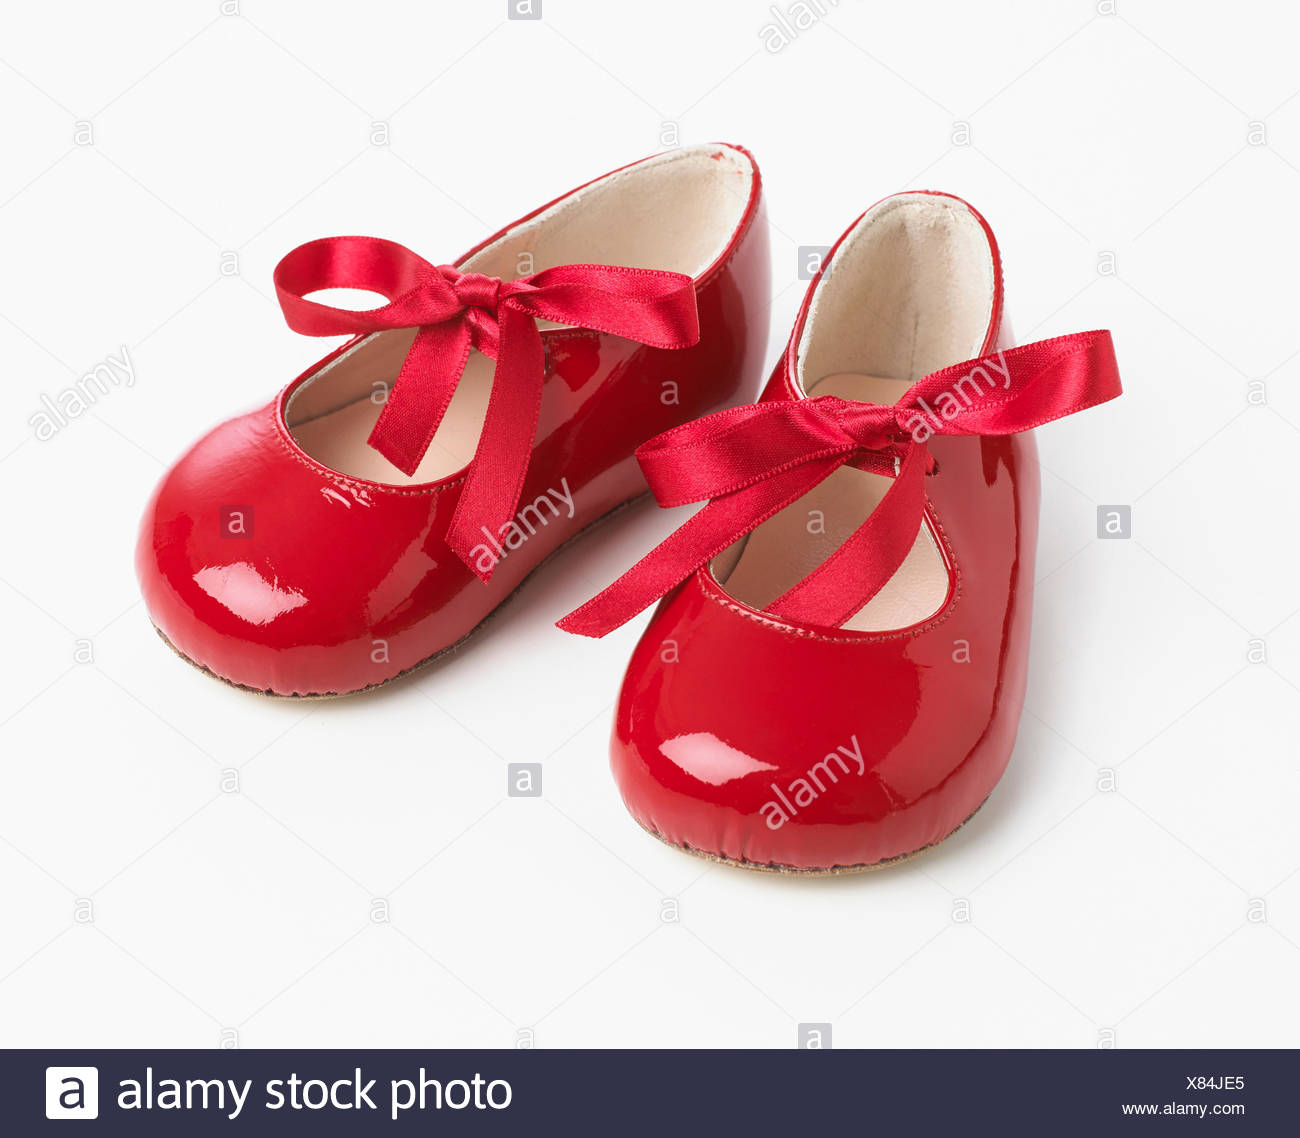 Le ruban rouge chaussures Photo Stock